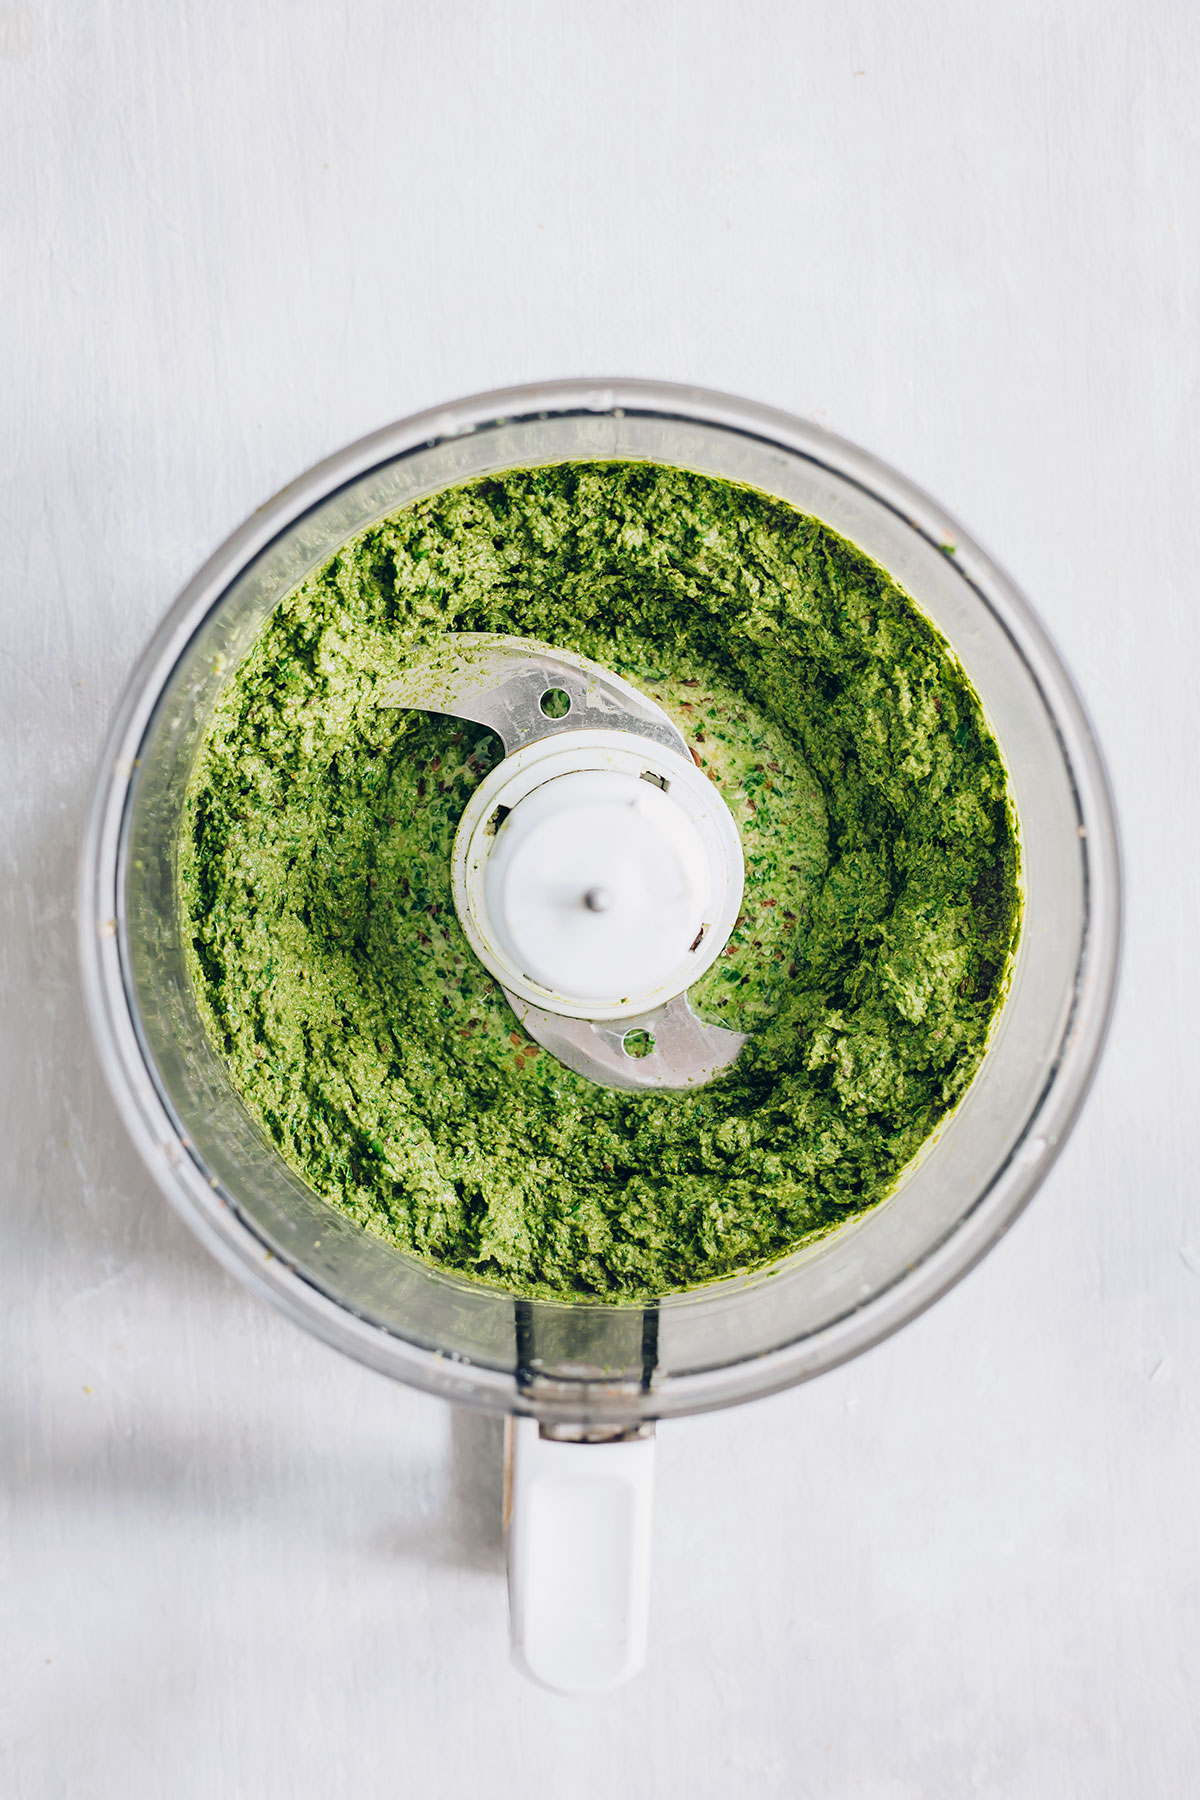 Blending Freezer Pesto Ingredients Together